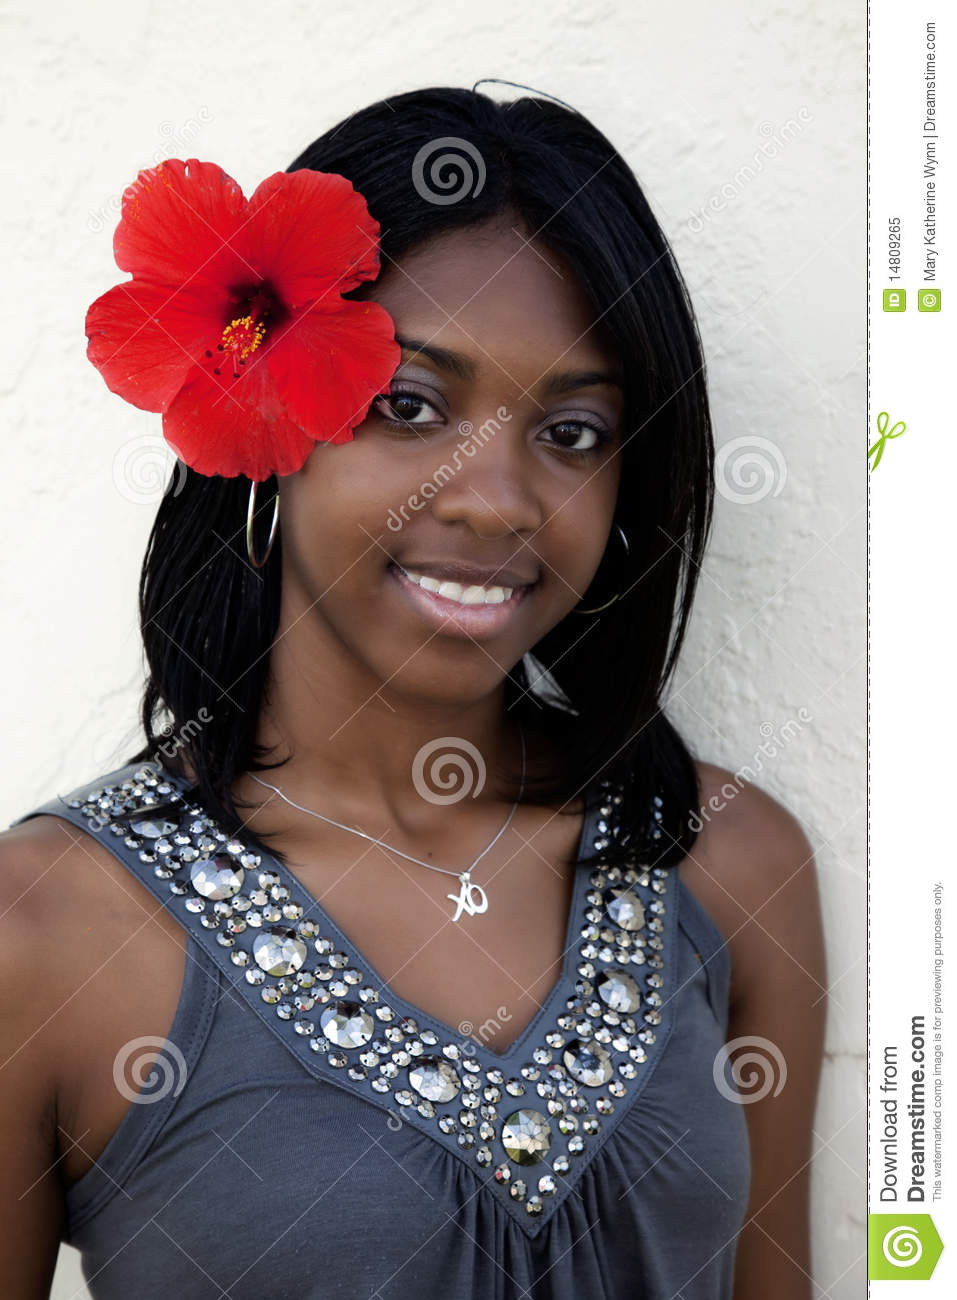 Tropical Island Girl Royalty Free Stock Photo Image